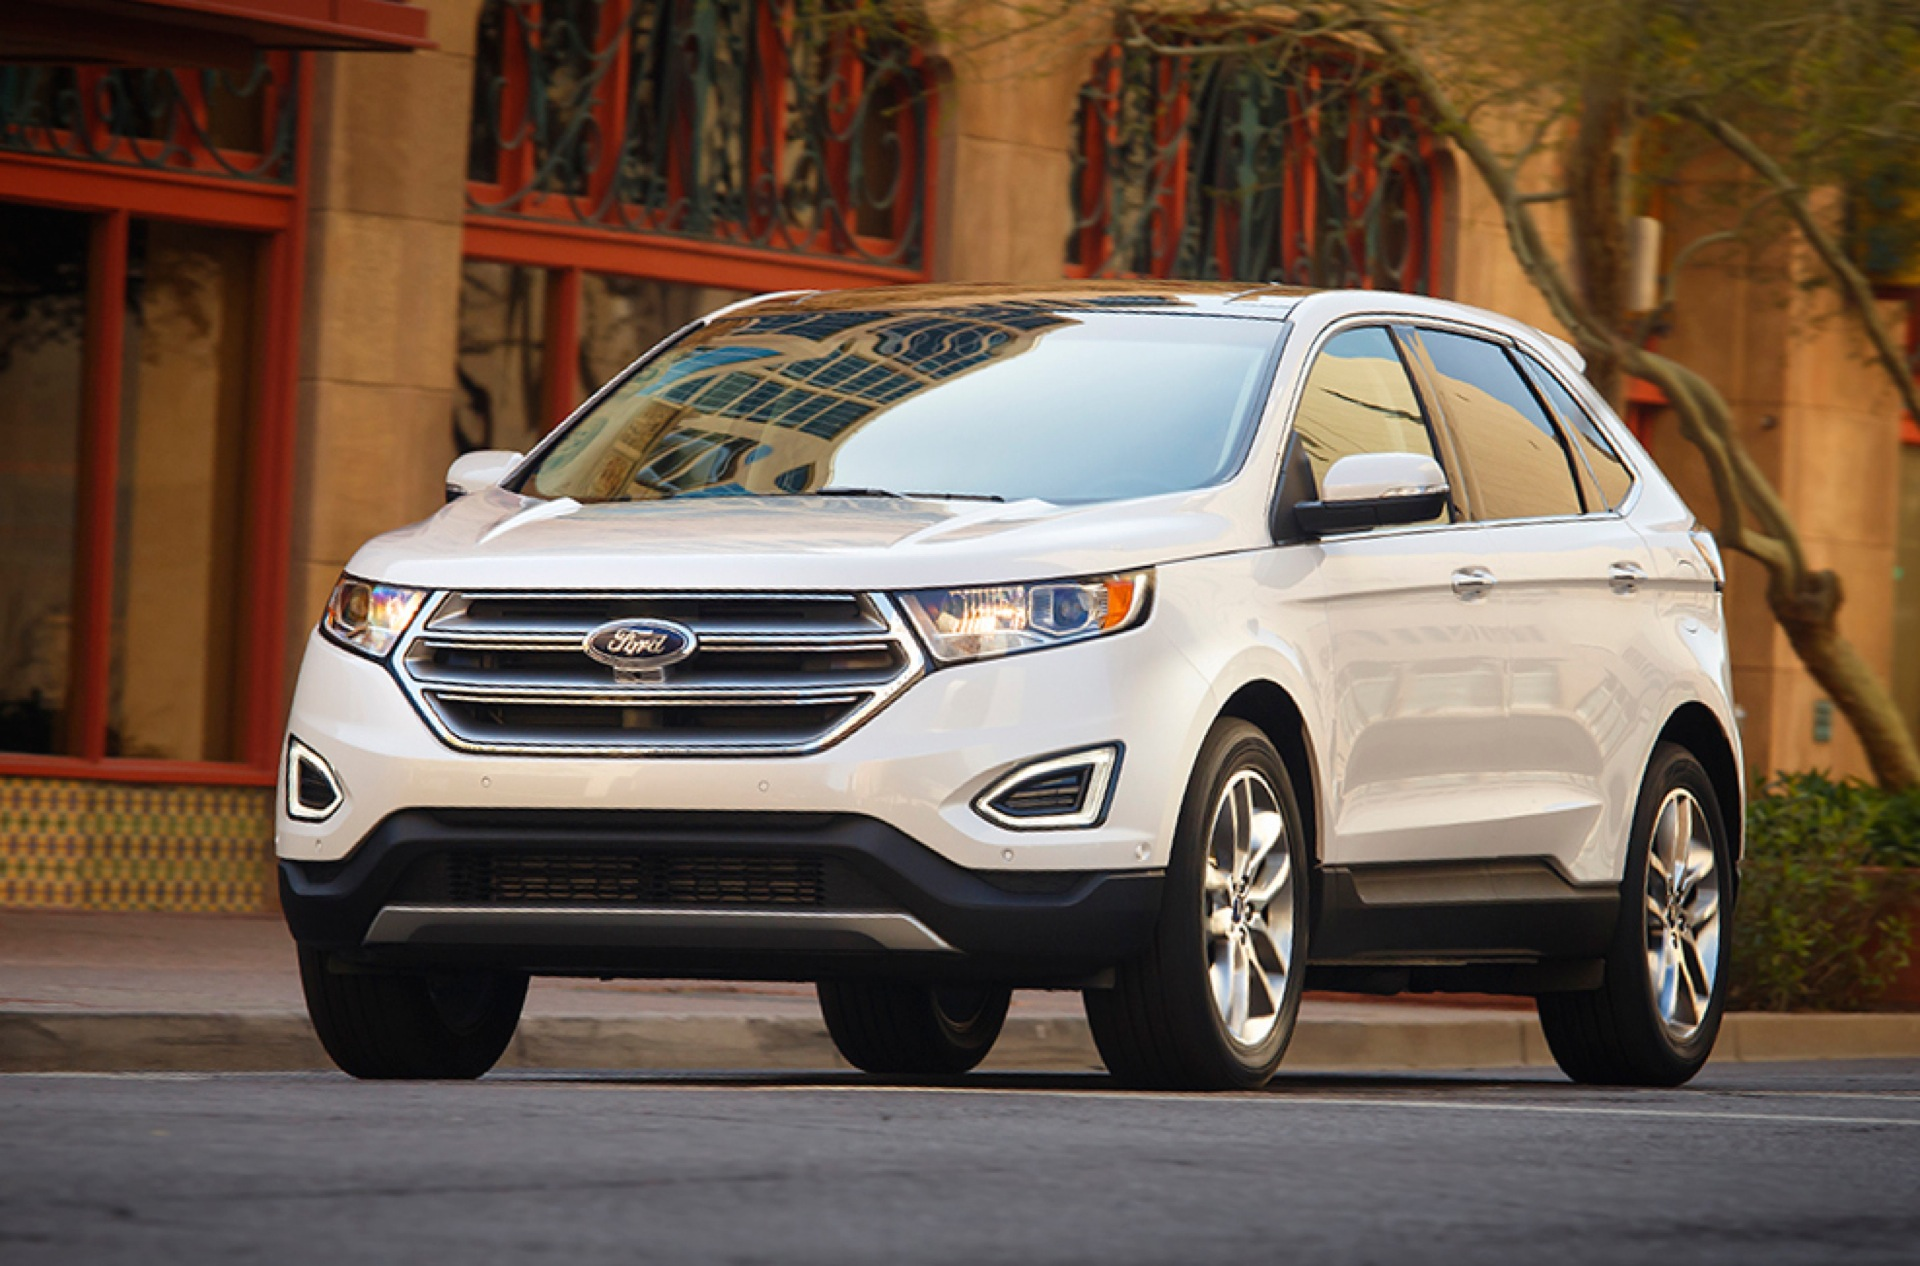 Cadillac El Paso >> 2015 Ford Edge, Initial Quality Study, Grand Cherokee Trackhawk: What's New @ The Car Connection